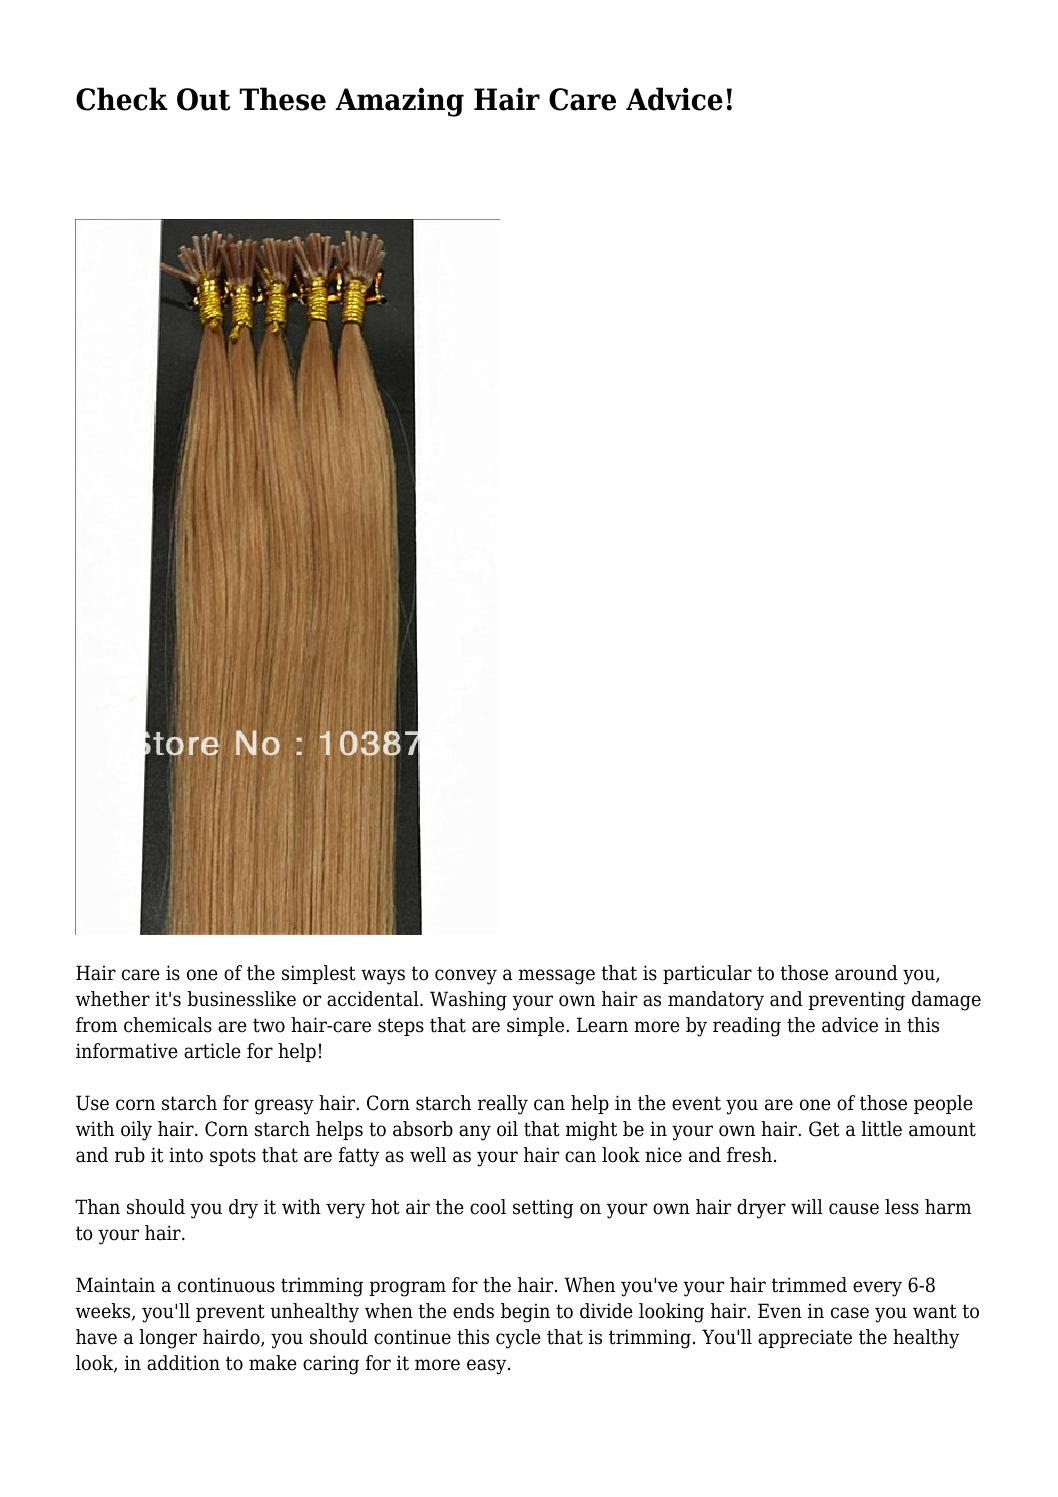 Check Out These Amazing Hair Care Advice By Imperfectalloy644 Issuu